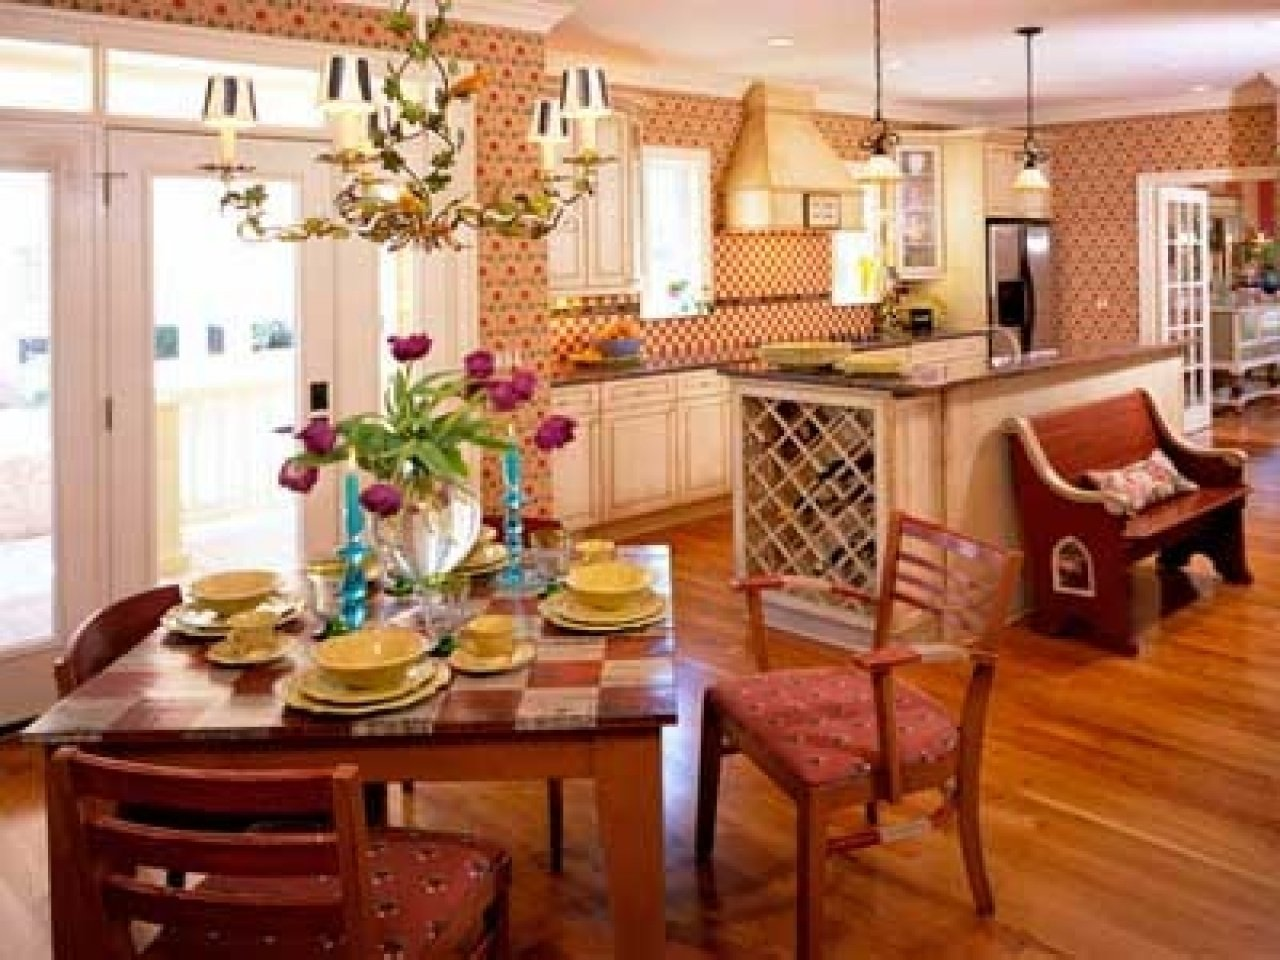 10 Stylish Country Decorating Ideas On A Budget country decorating ideas with some simple yet fabulous diy projects 2021